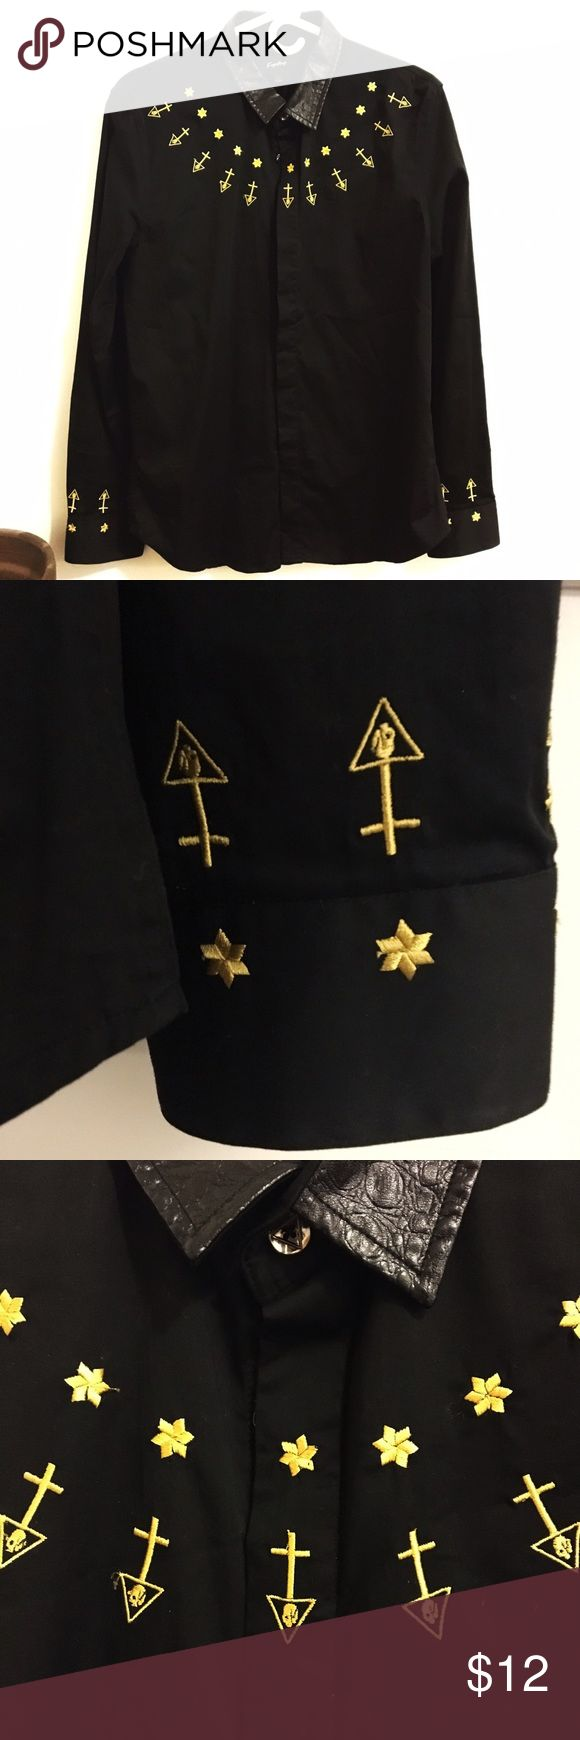 Black button up hold threaded shirt Spooky black button up shirt with faux leather collar and gold threaded details of stars, arrows, crosses, and sculls. Perfect to wear to work or tucked into a pencil skirt. #sigil #occult #witchy #symbol #goth #grunge #eccentric #gypsy #longsleeves #office Tops Button Down Shirts